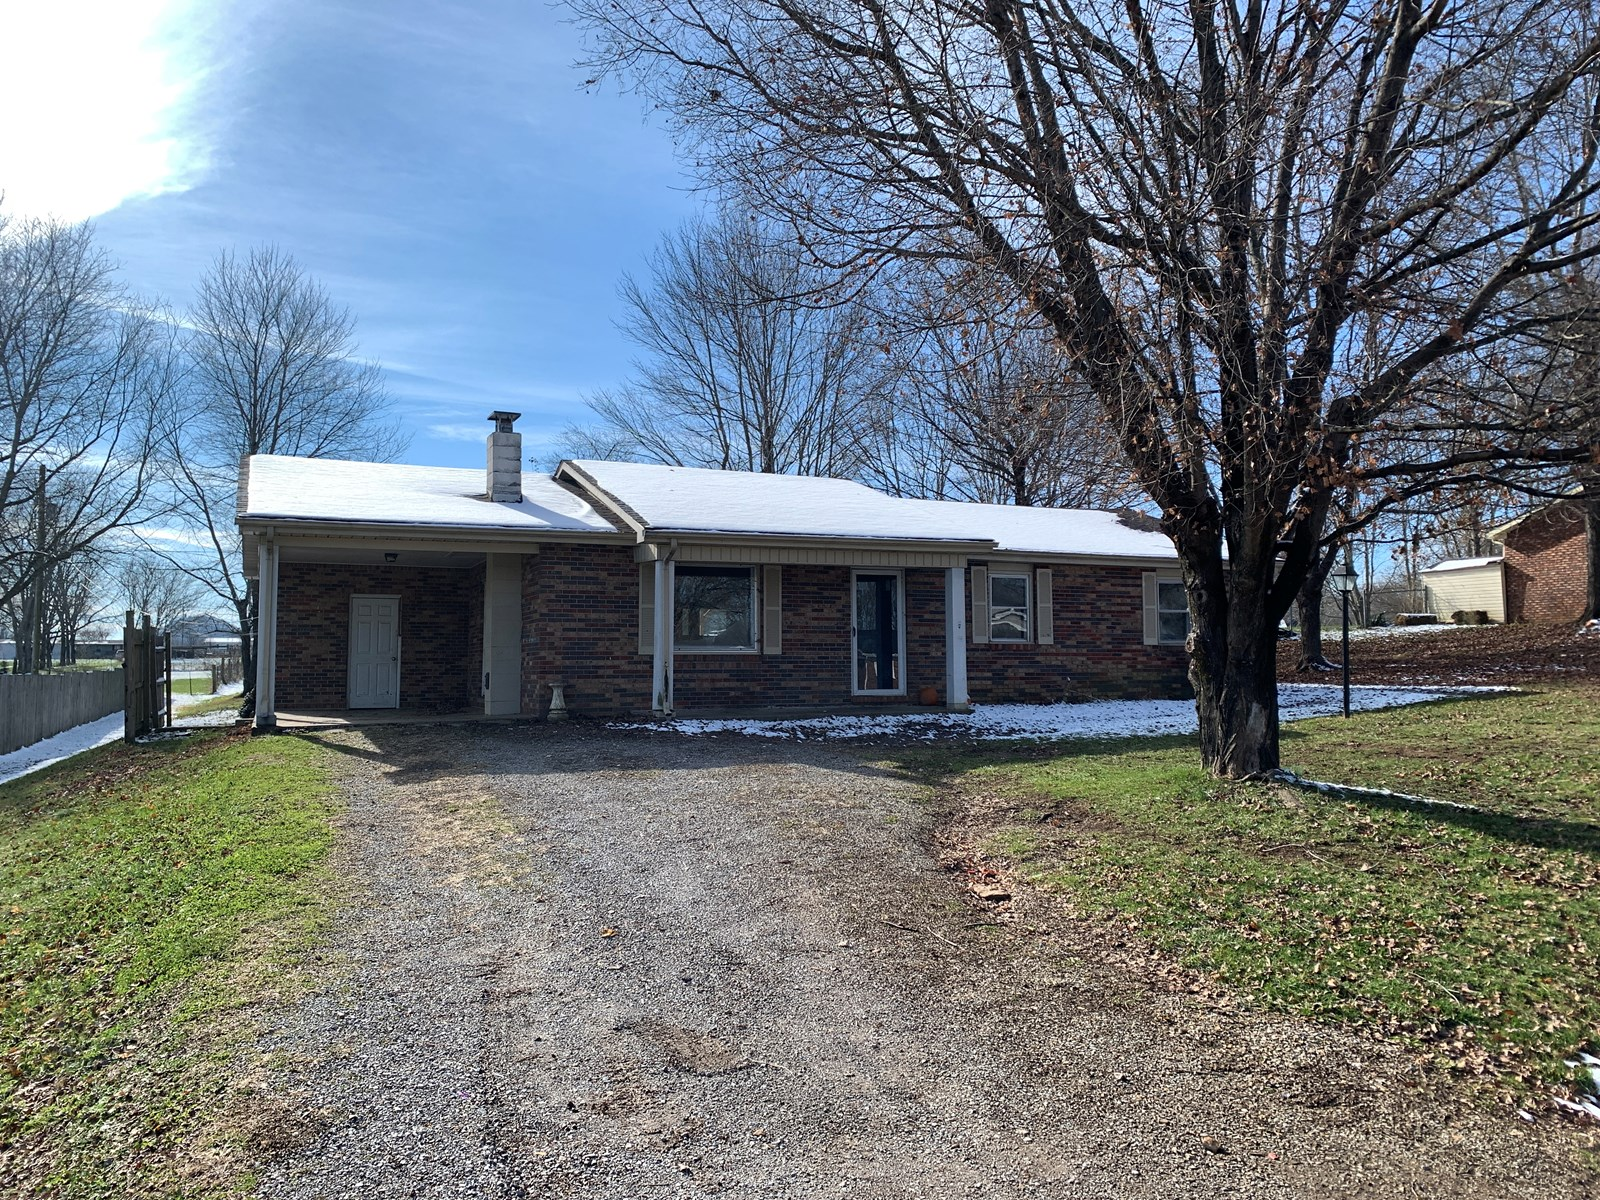 3 BEDROOM BRICK HOME/FIXER-UPPER/STORAGE BLDG.-STANFORD, KY.